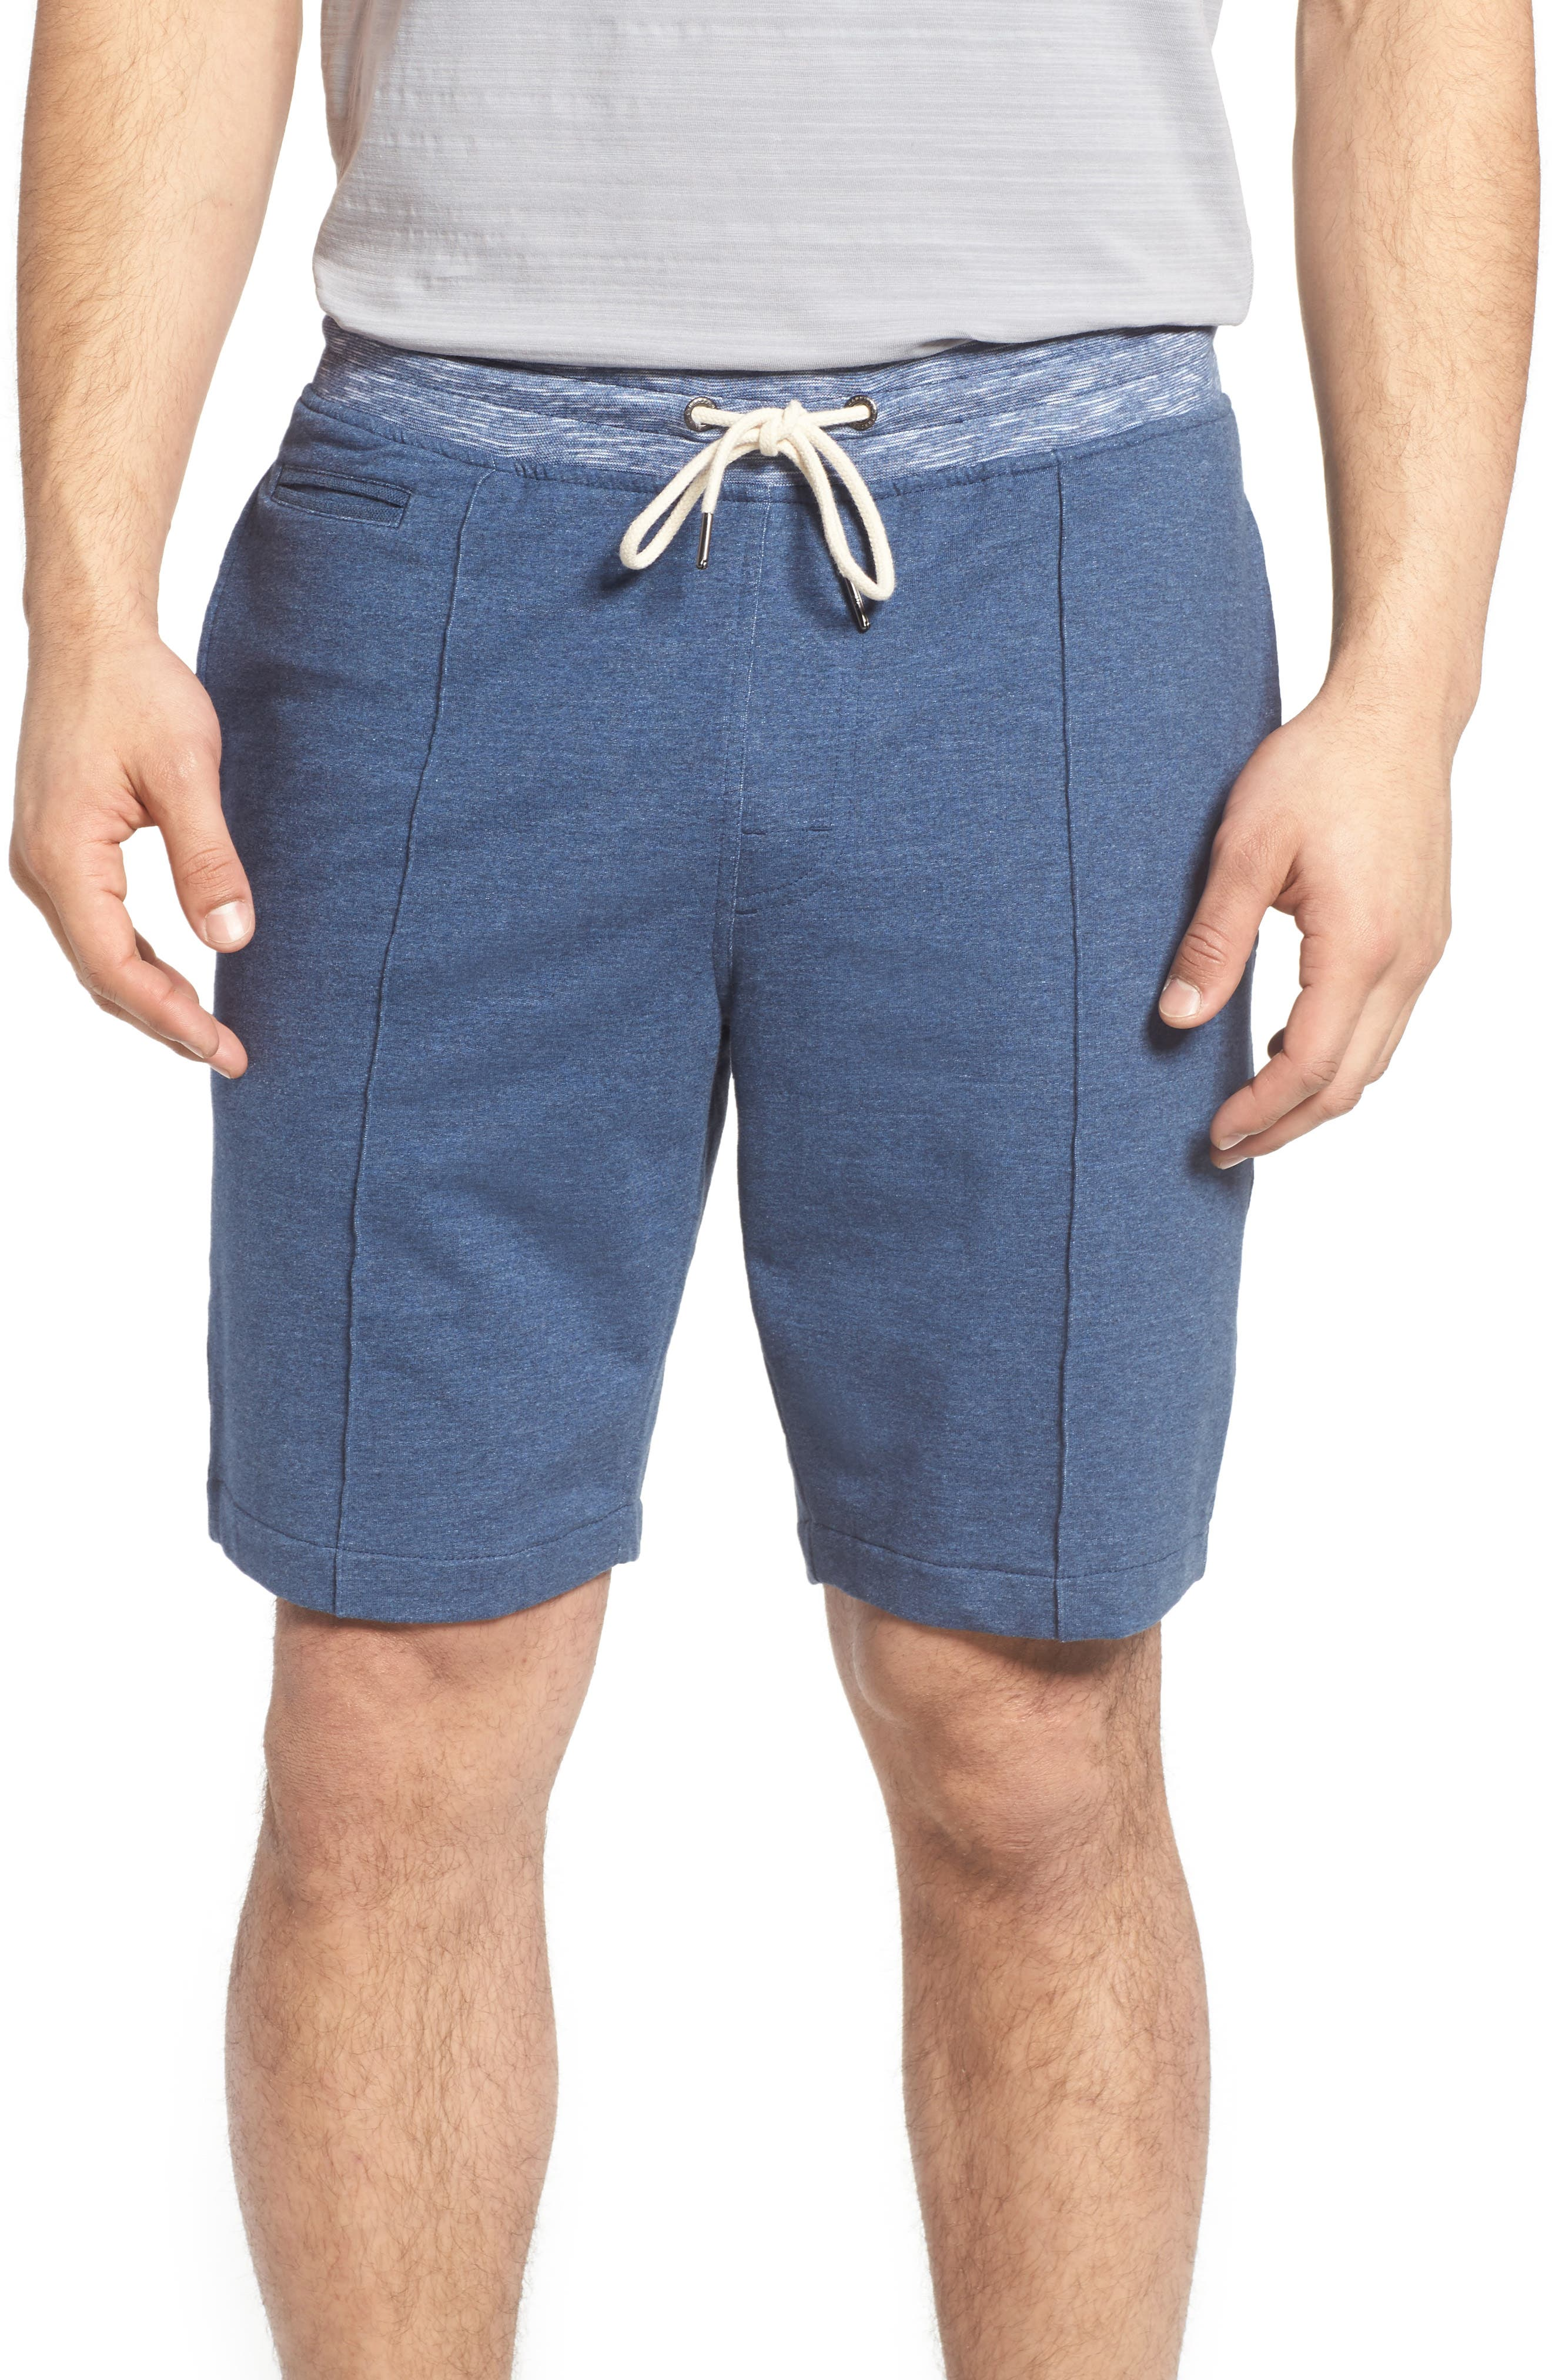 Wright French Terry Shorts,                         Main,                         color, Navy